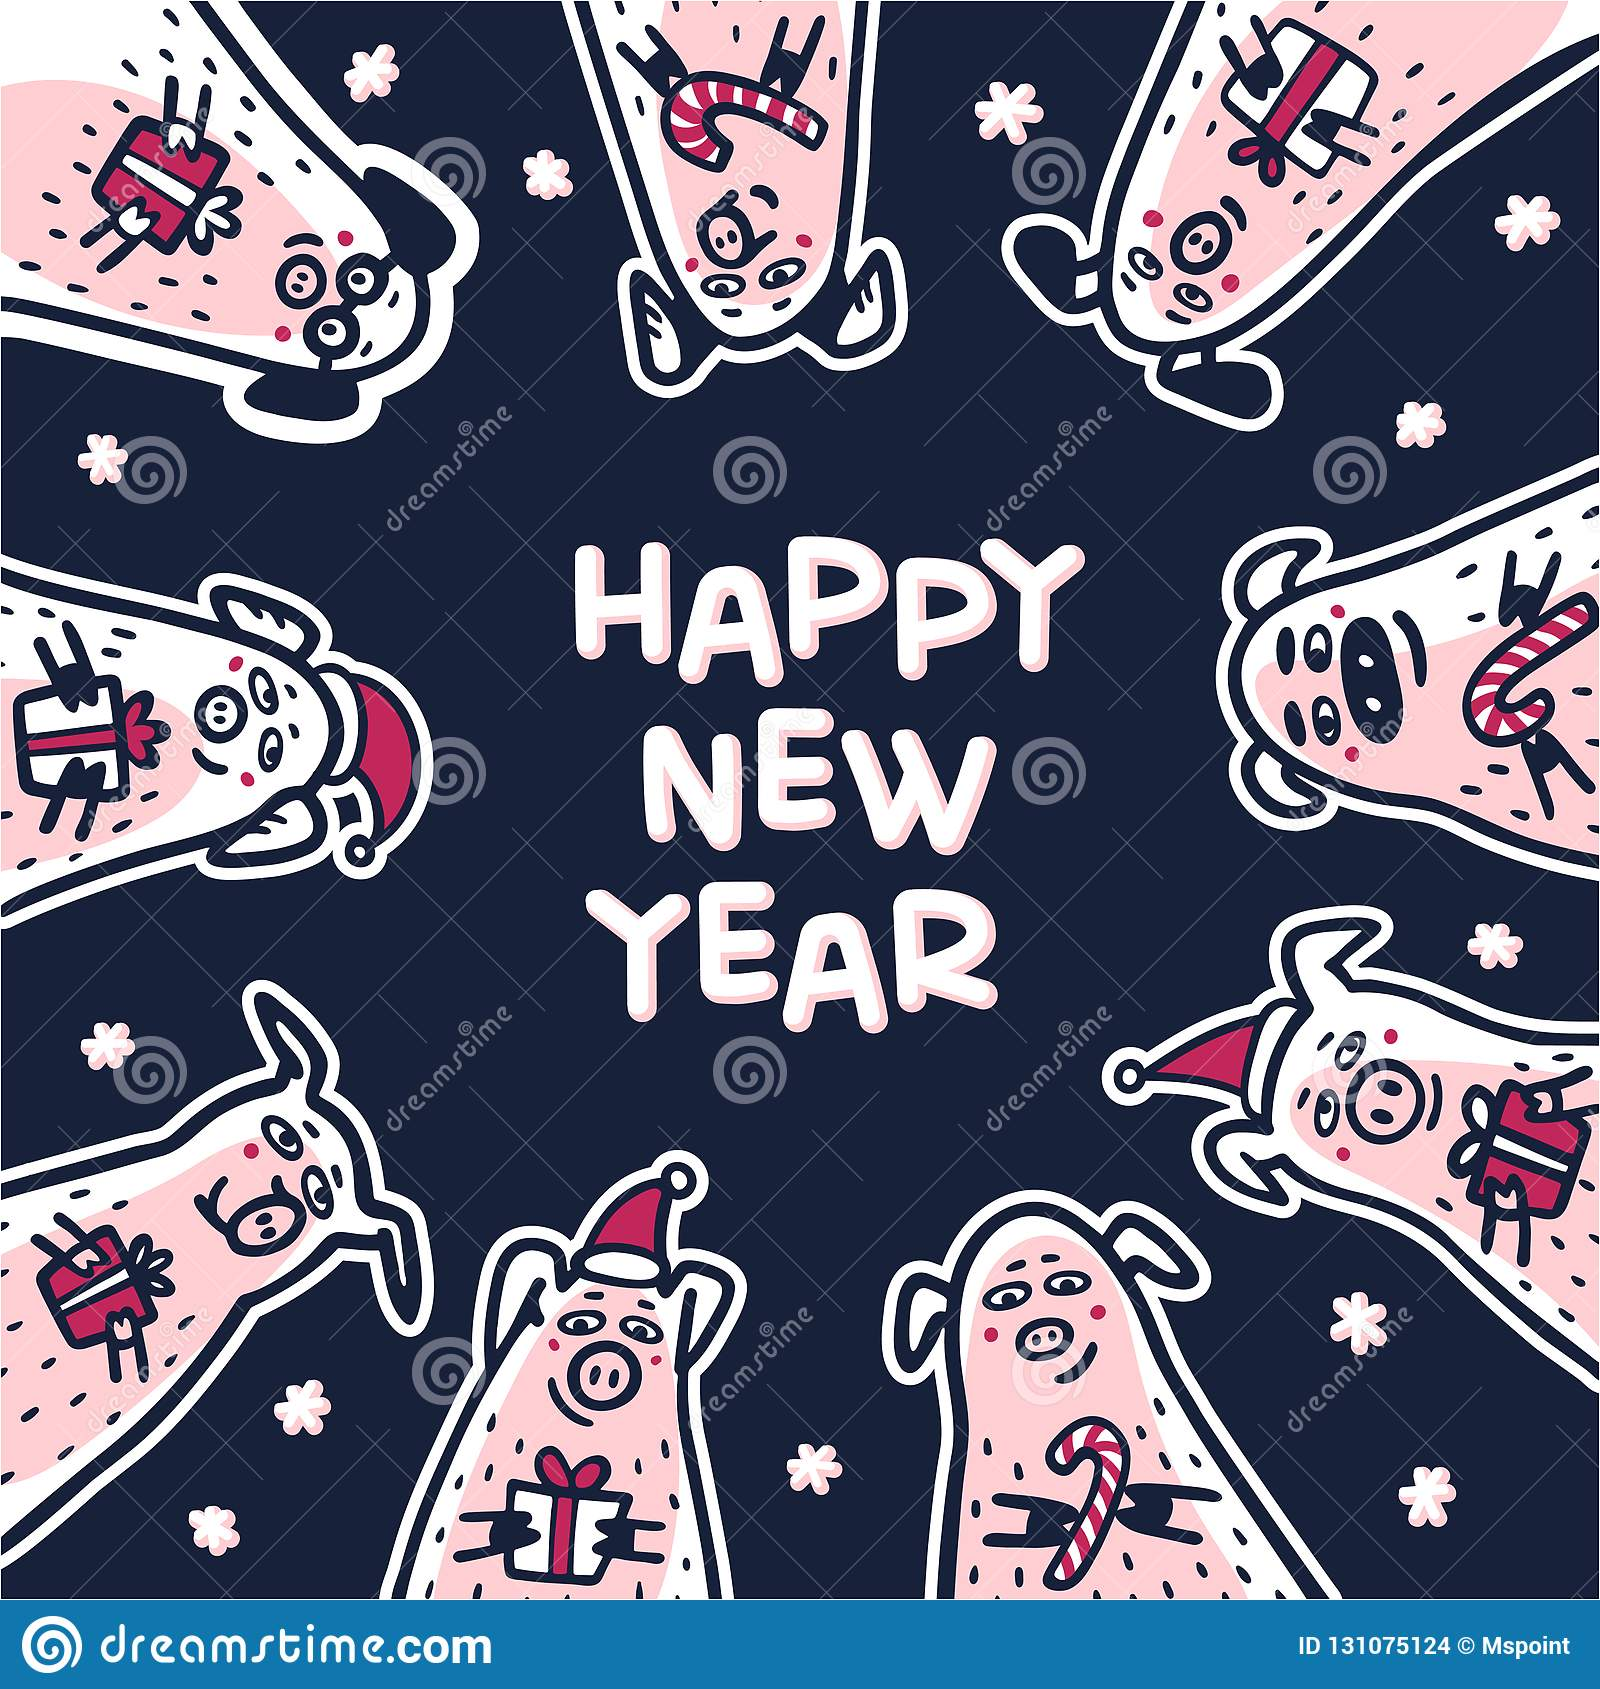 73facfcf22250 Happy New Year Pig Greeting Card. Funny Pigs With Candy Canes